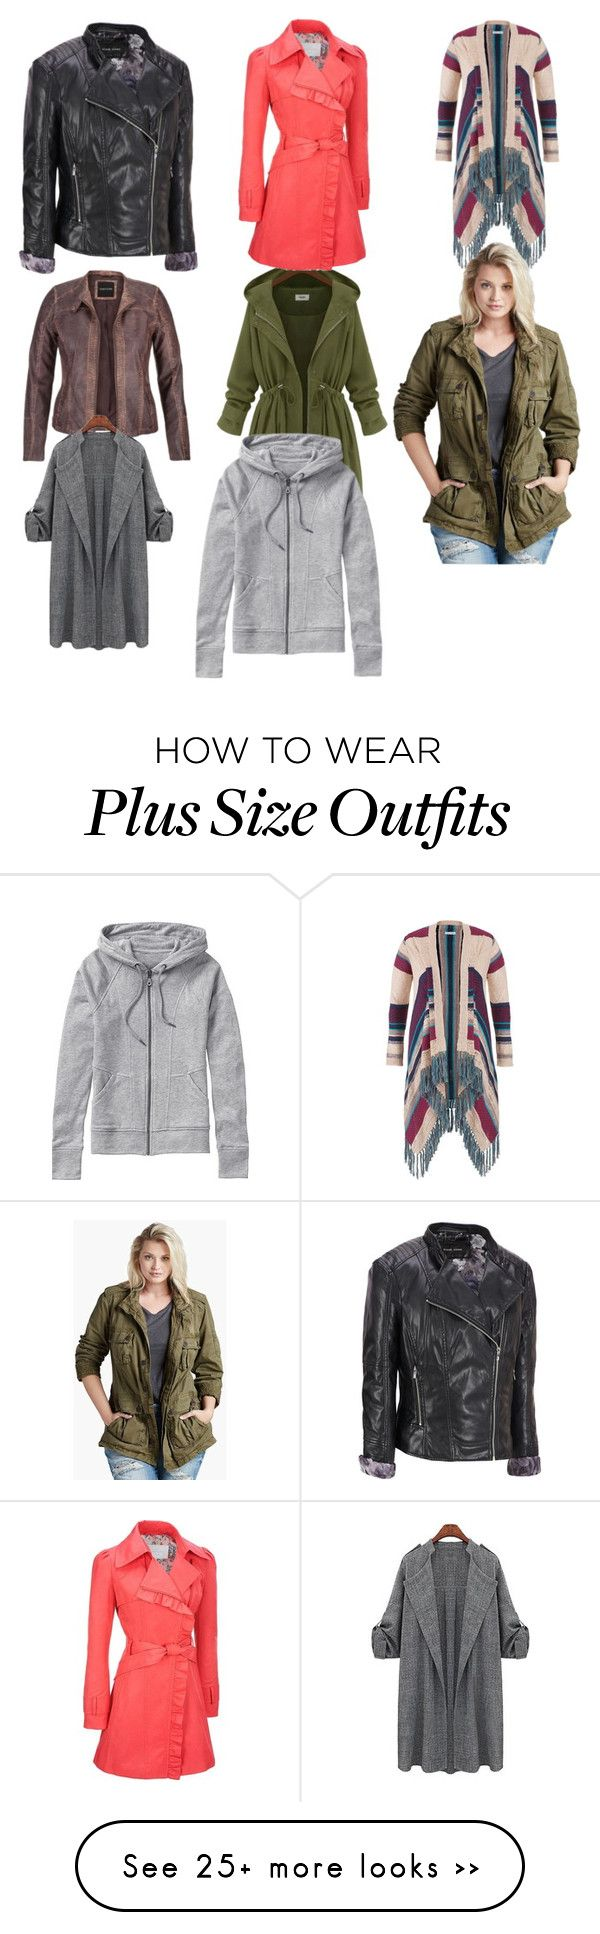 """""""Plus size outerwear"""" by suzinjersey on Polyvore featuring maurices, Jessica Simpson, Black Rivet, Lucky Brand, Athleta and plus size clothing"""